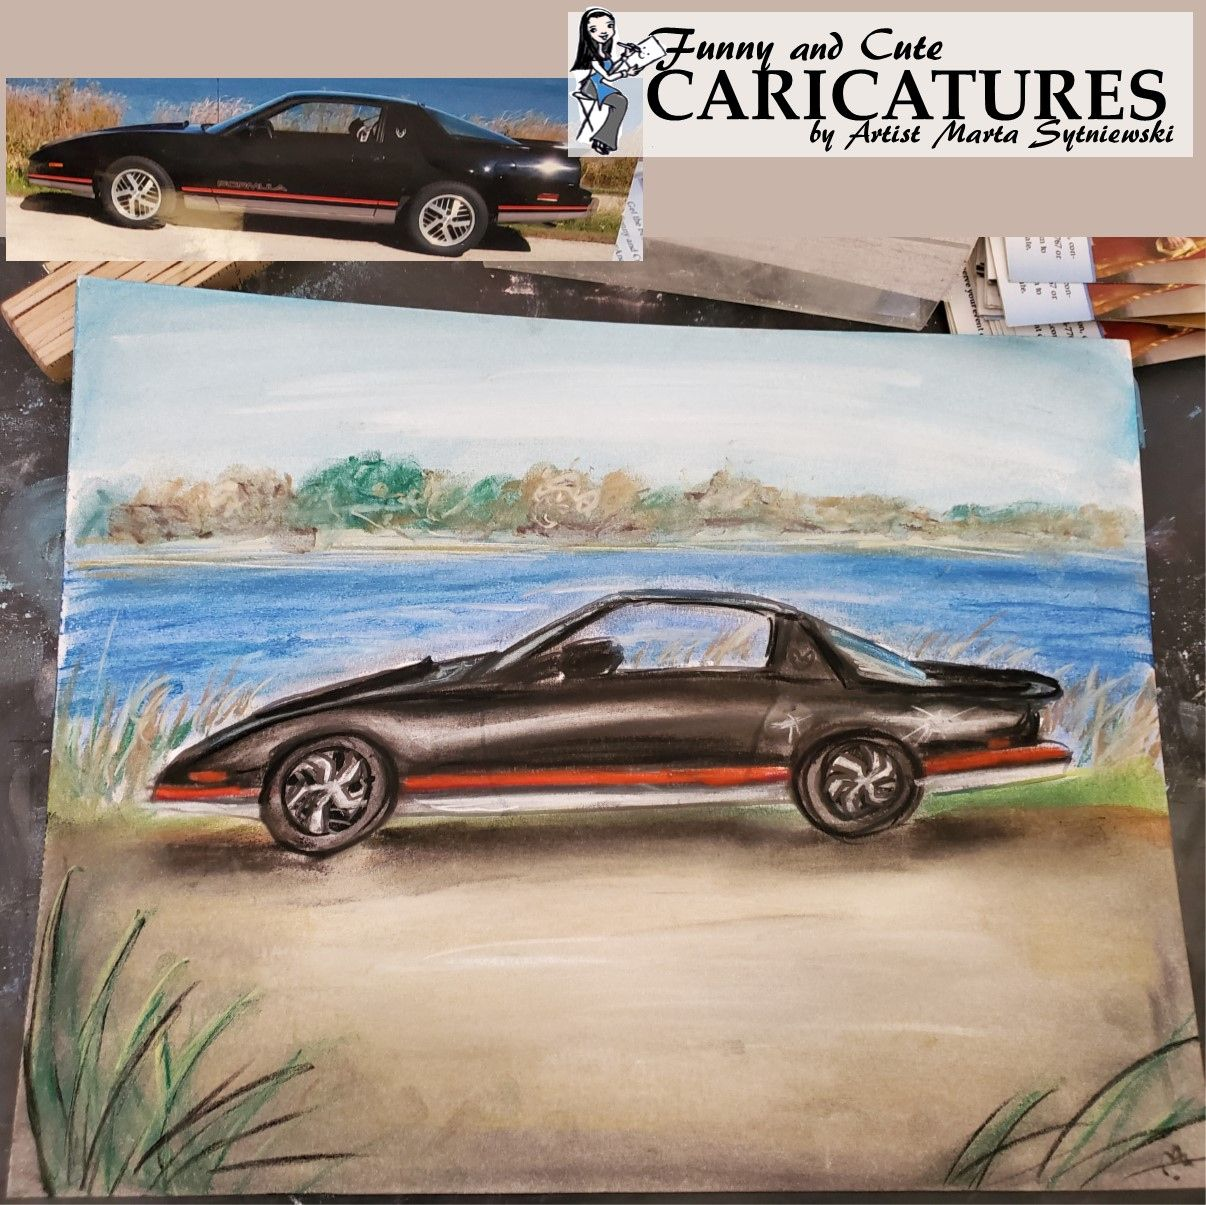 Get a handmade pastel drawing of your vehicle. Order your personalized car caricature by artist Marta Sytniewski today, call 773-574-7767 or email FunnyAndCuteCaricatures@gmail.com #Handmade #Handmacedrawing #Handmadecaricature #pastel #Pasteldrawing #Cardrawing #Vehicledrawing #CarCaricature #Pastelcaricature #MartaSytniewski